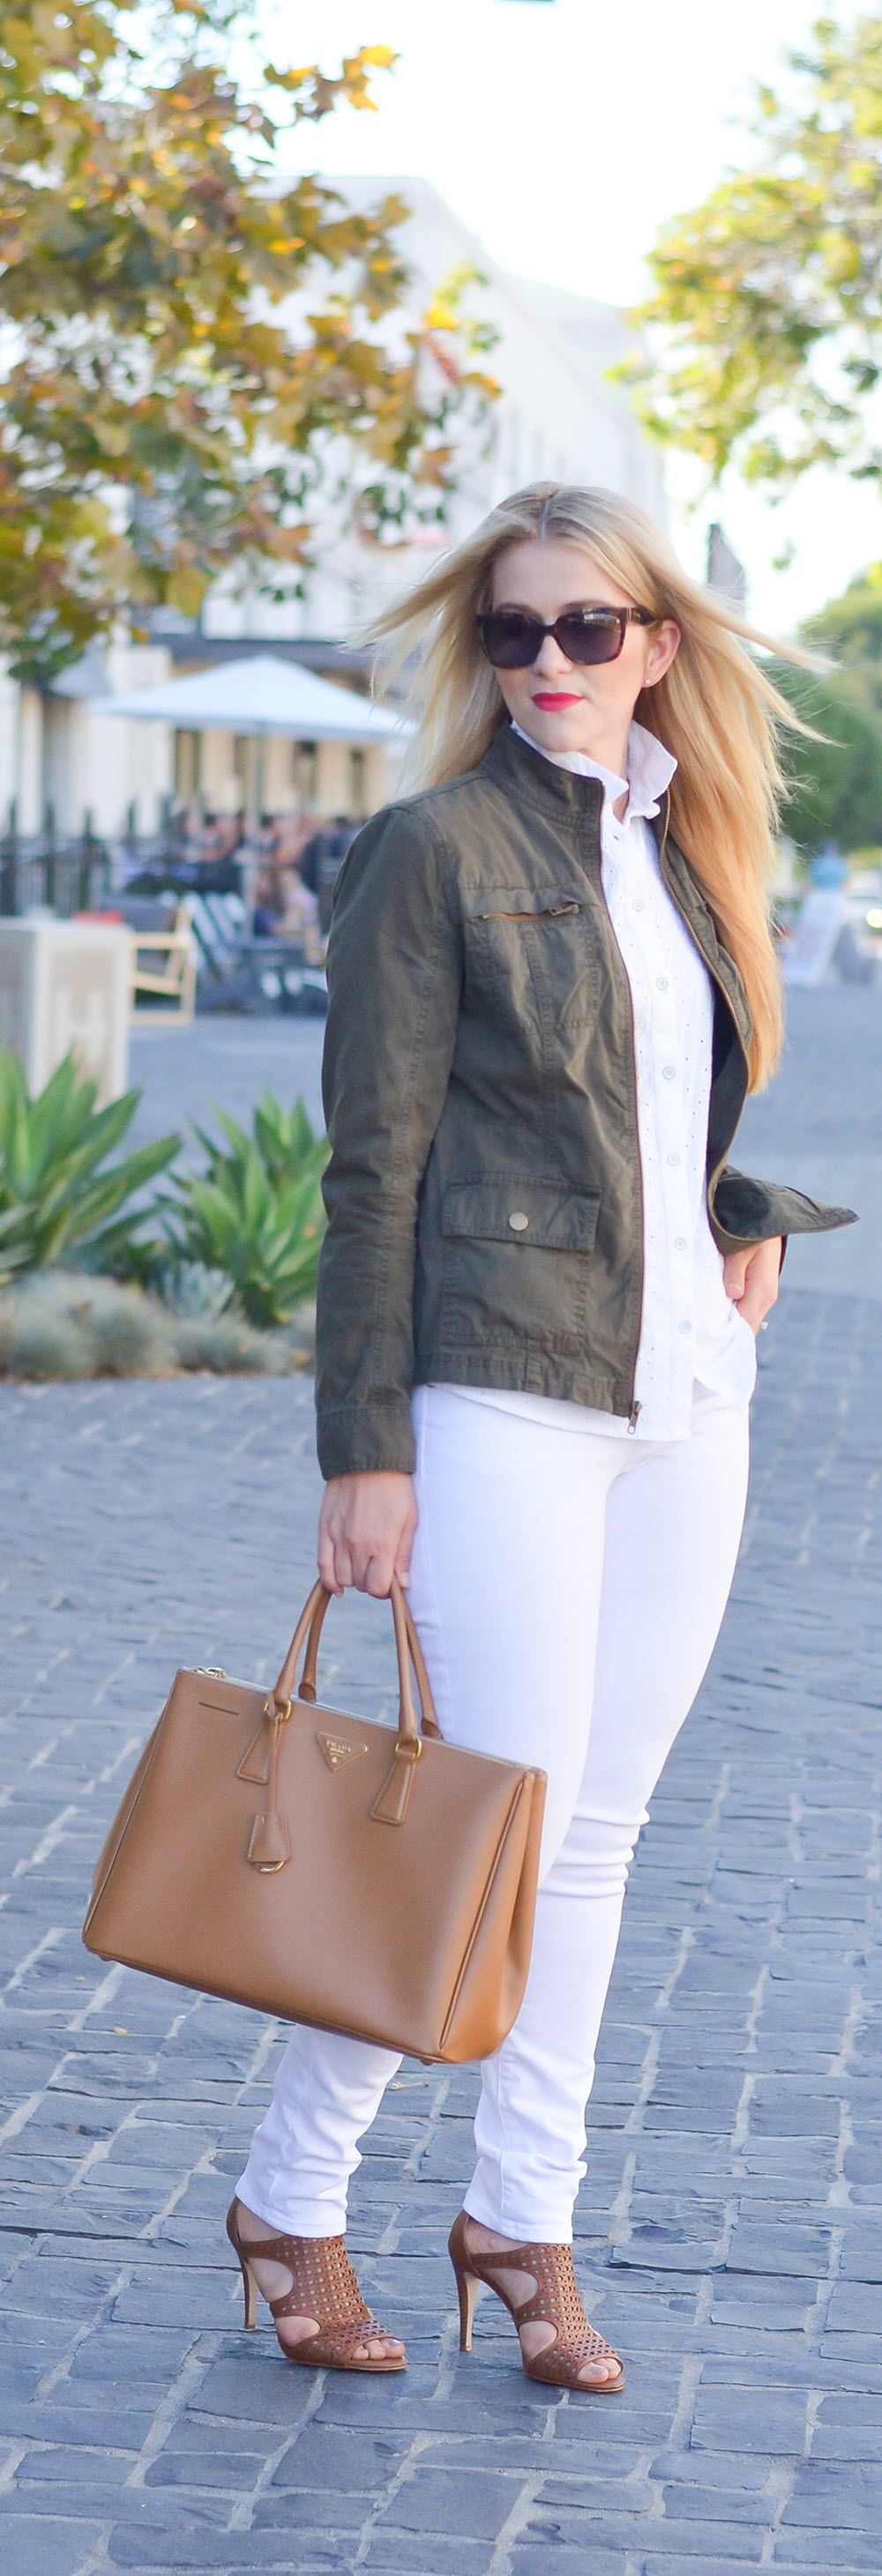 White Monochrome Outfit for Fall